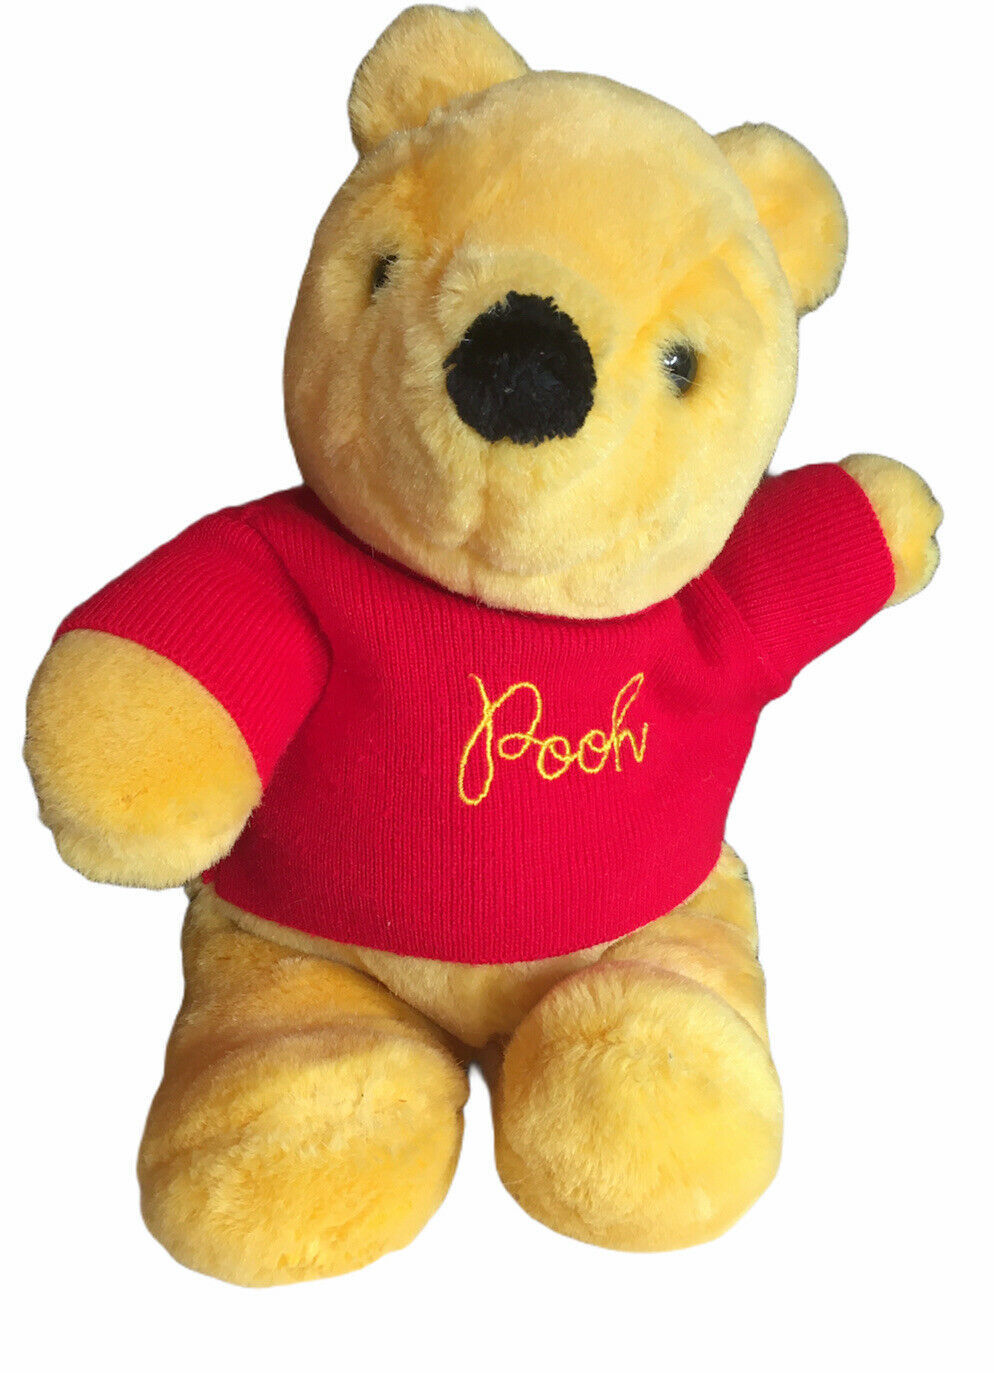 """Vintage Gund Sears Winnie The Pooh 12"""" Plush Winnie The Pooh With Red Sweater - $16.78"""